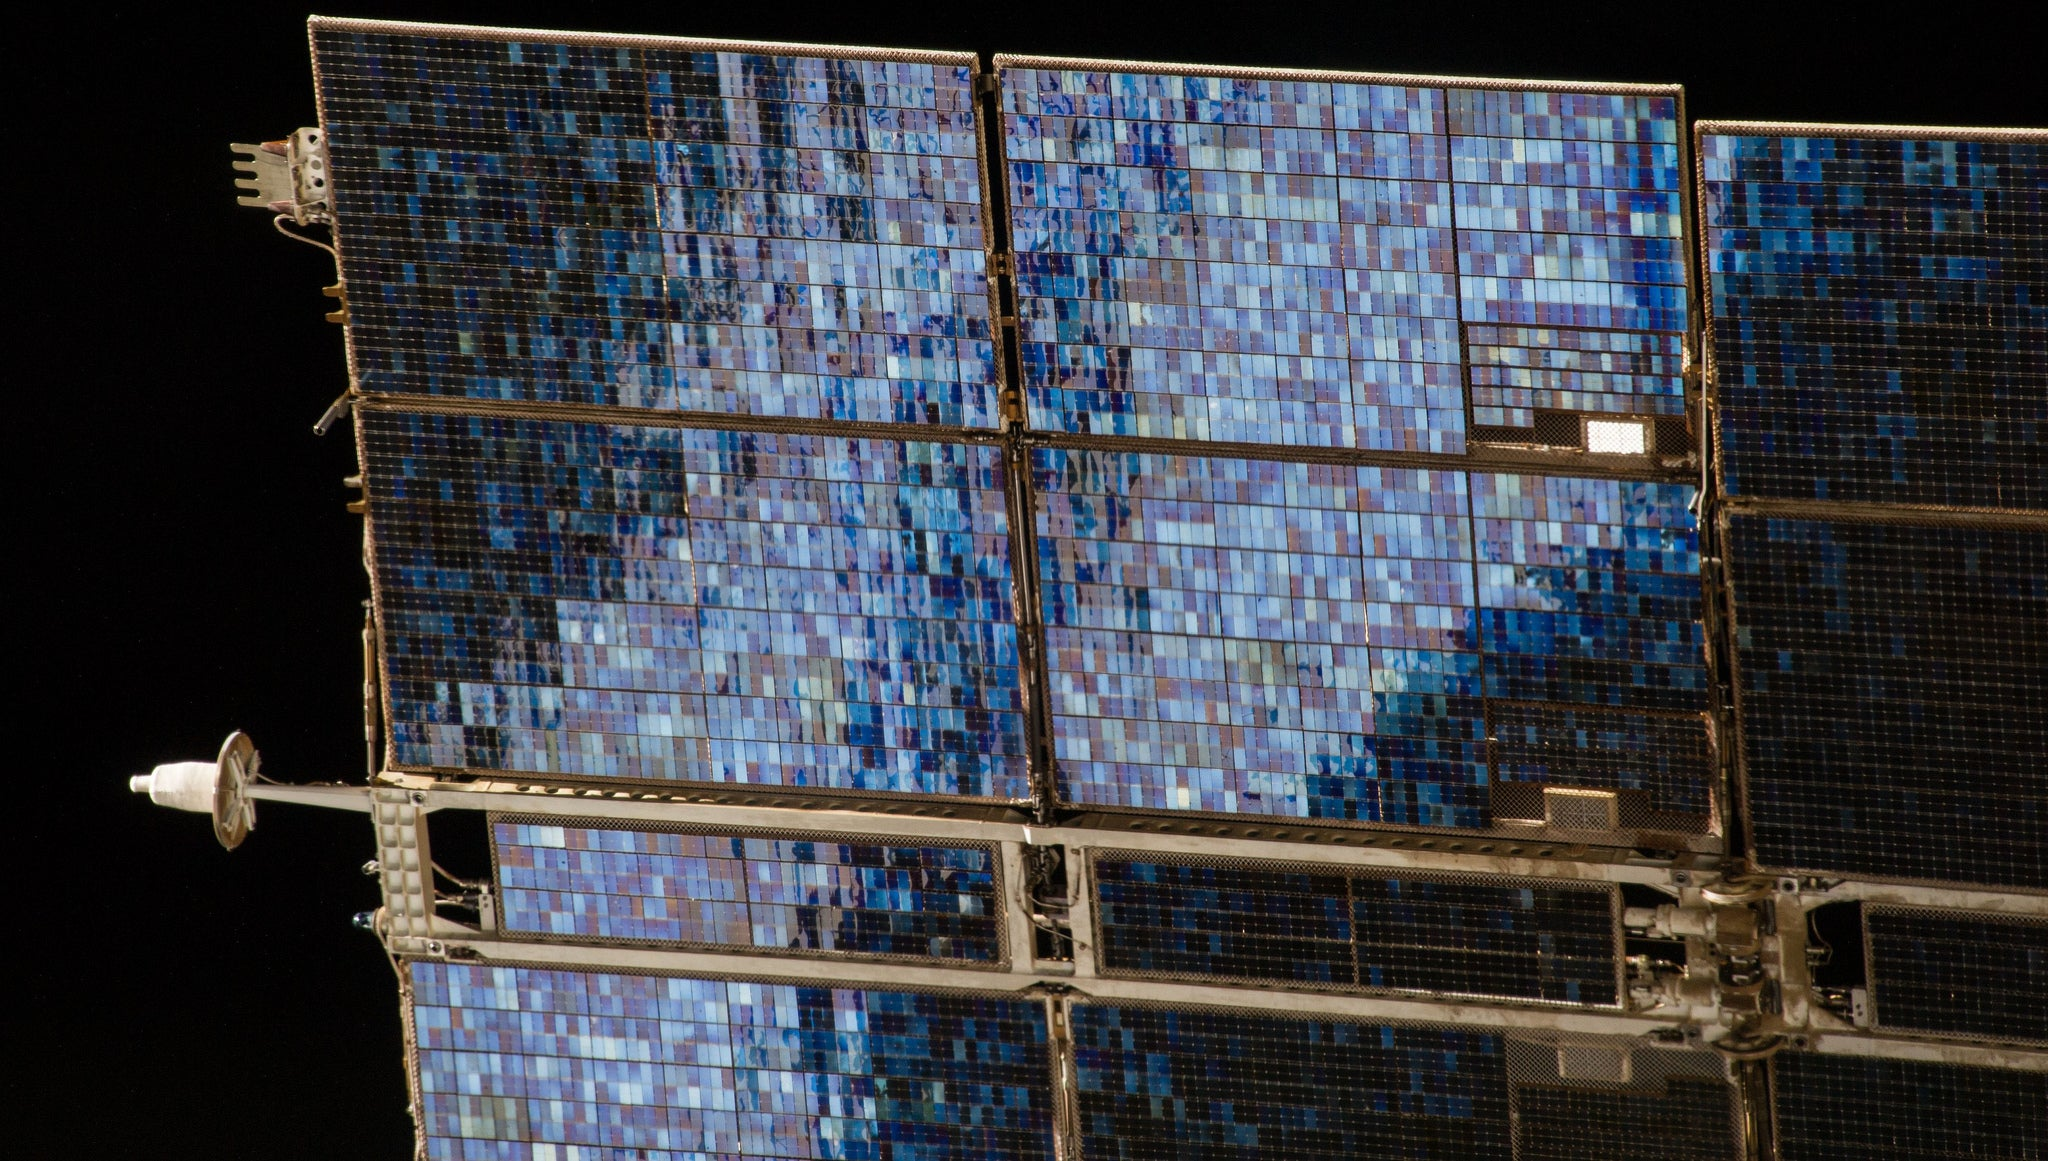 Solar Panel is a Glittering Blue Mosaic Against the Blackness of Space